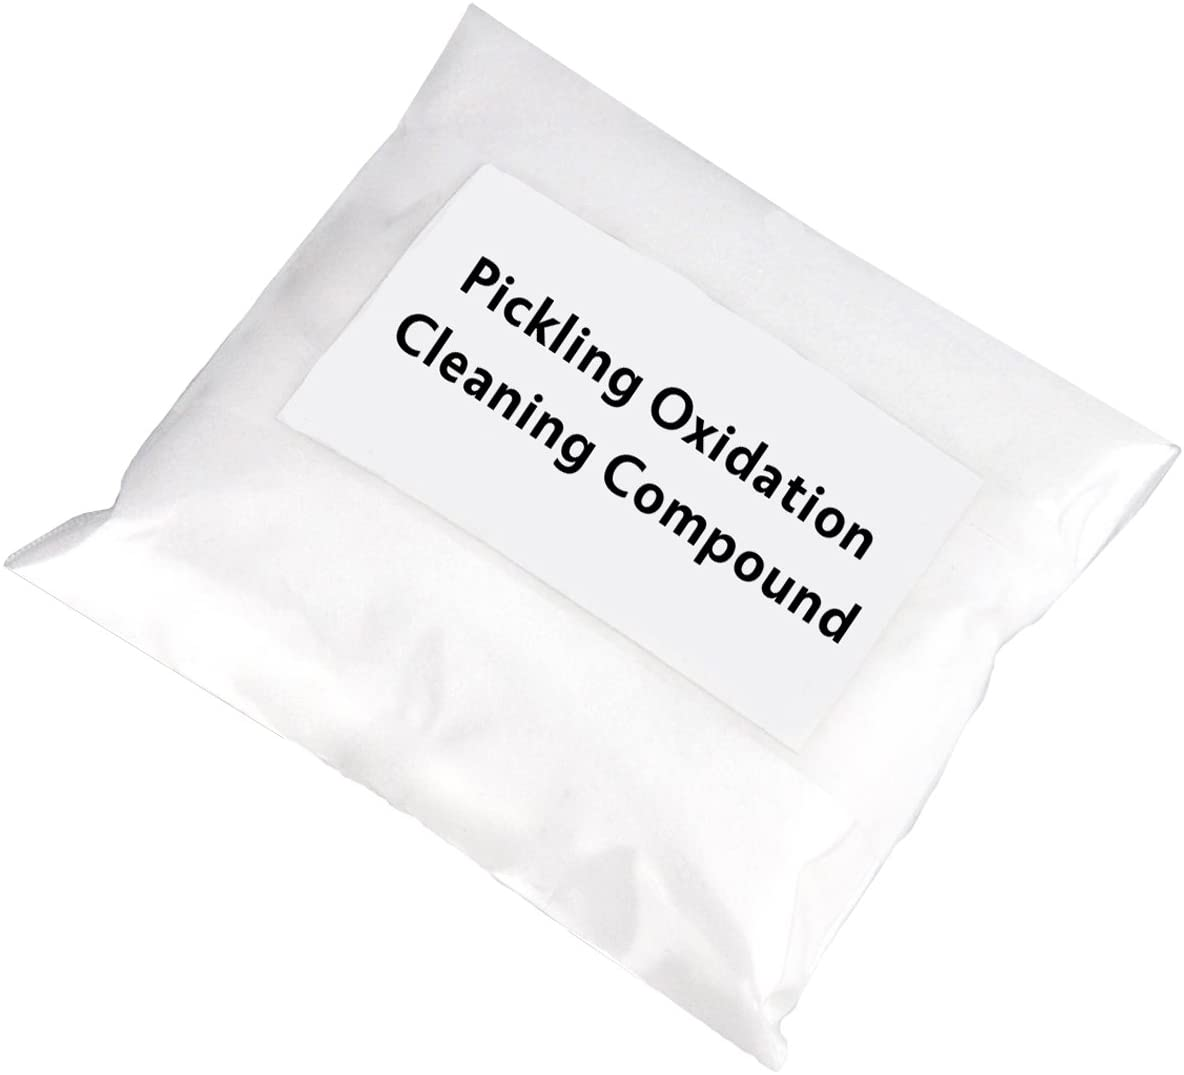 10 LB 160 oz Pickle Pickling Powder Deoxidizing Flux Cleaning Compound for Gold Silver Copper Brass Jewelry Cleaner